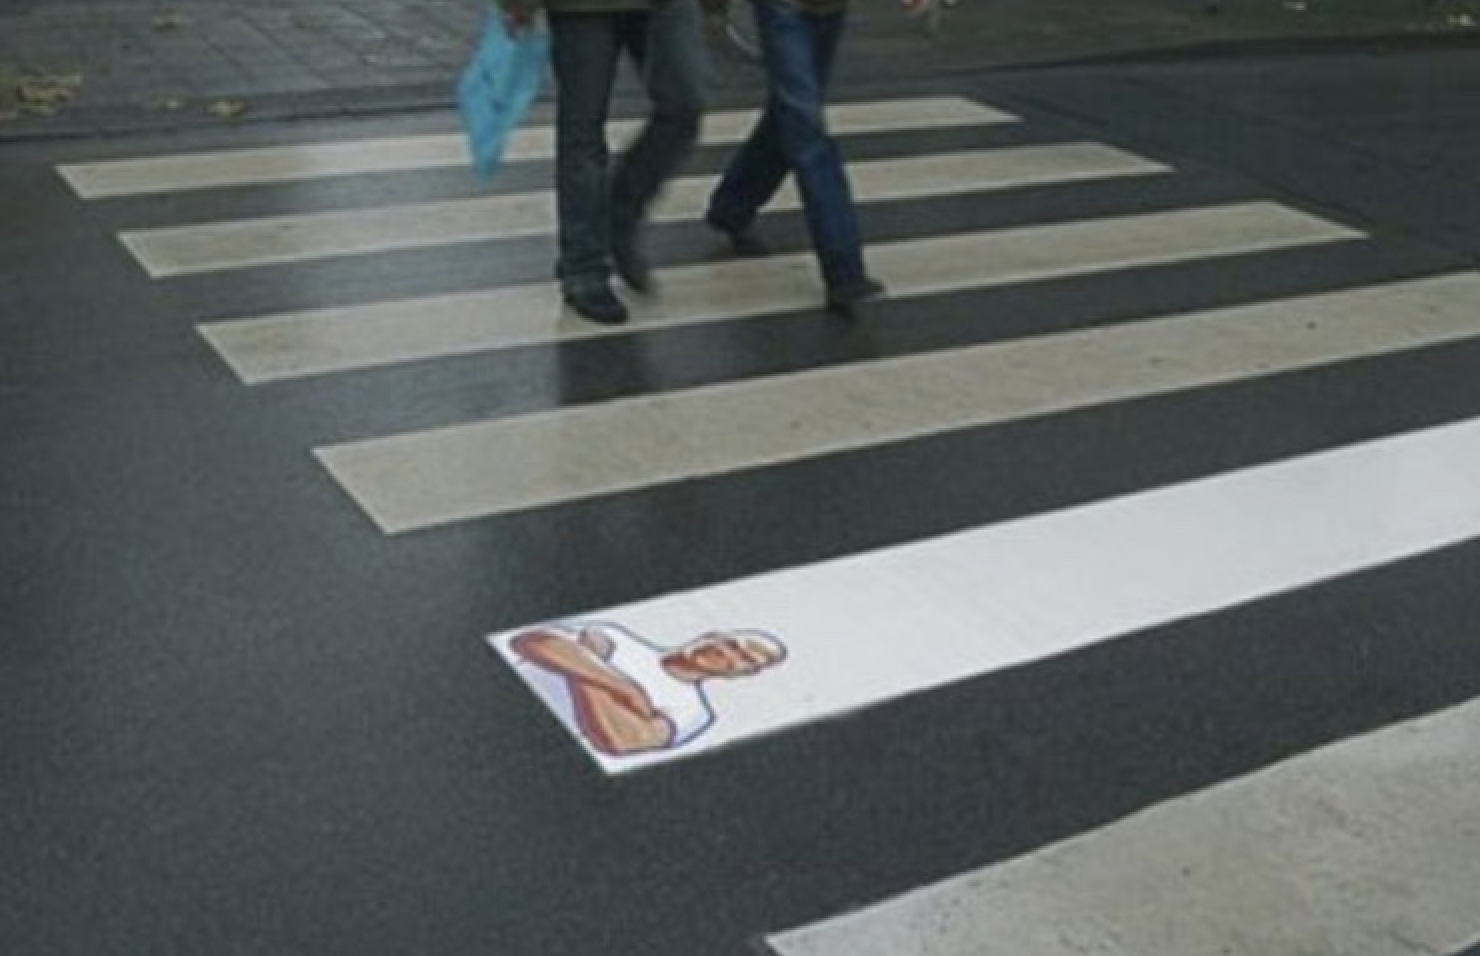 Guerrilla Marketing - Mr. Clean